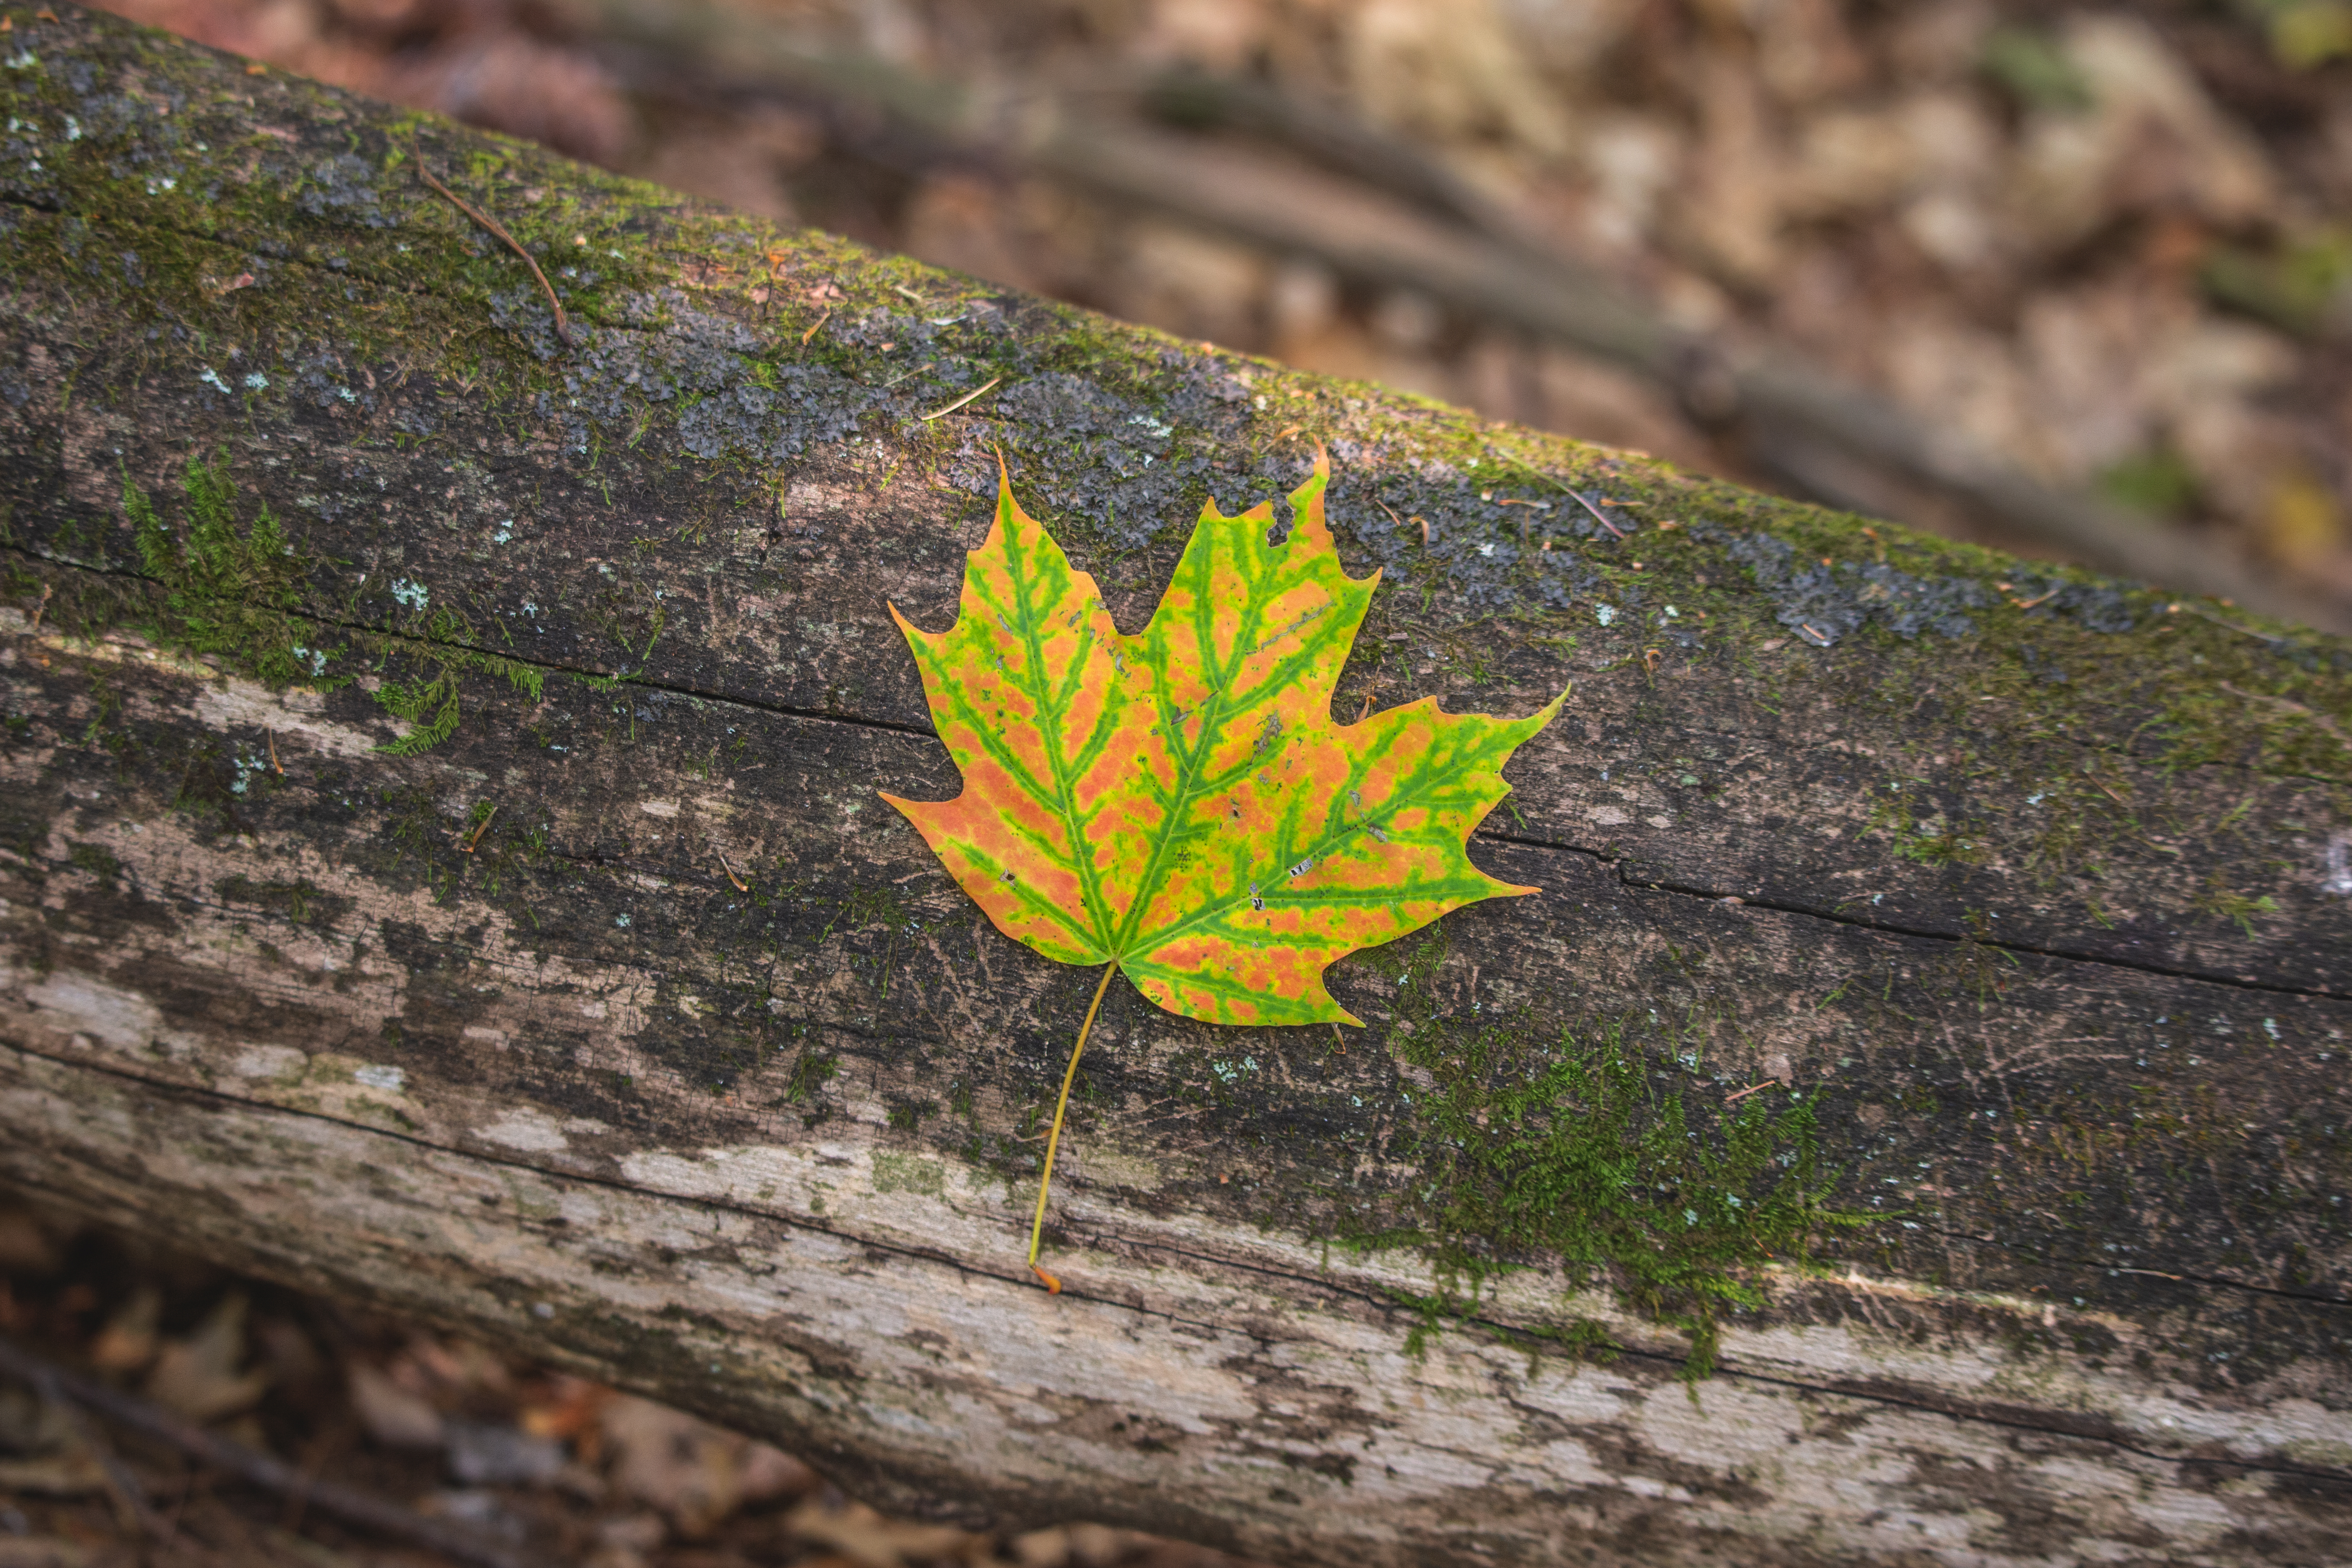 120050 download wallpaper Macro, Maple, Sheet, Leaf, Autumn, Bark screensavers and pictures for free